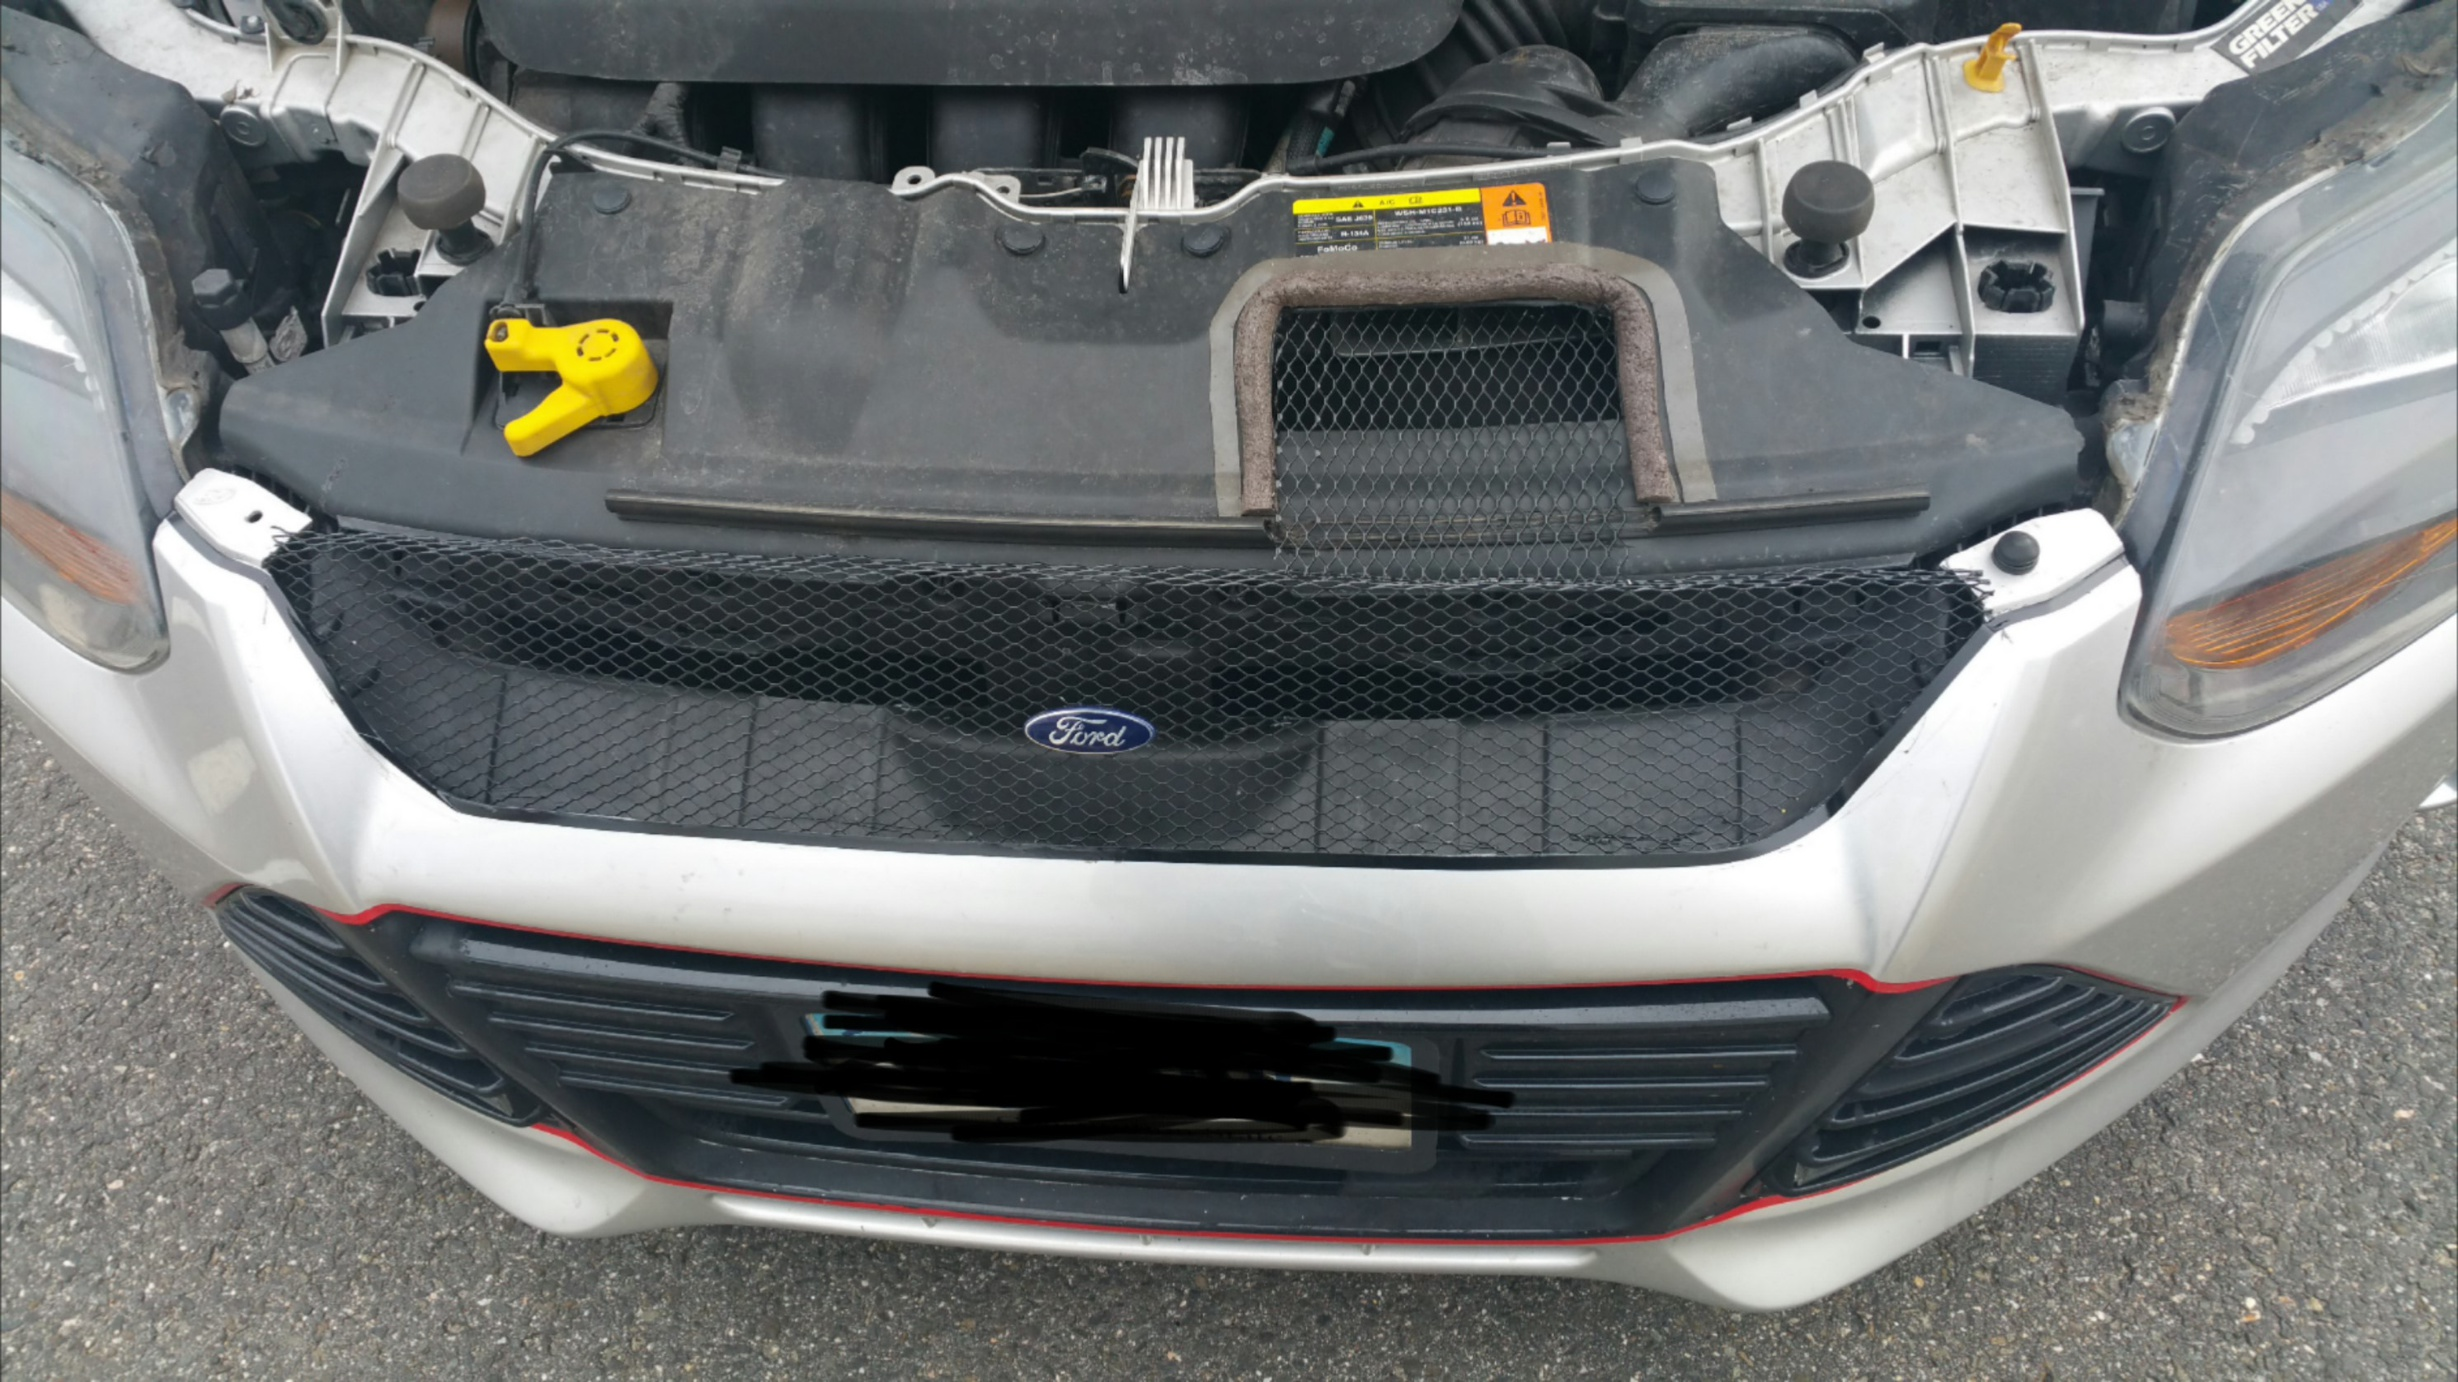 2012+ Focus Aftermarket Parts & Mods Info Thread.-focus-2012-air.jpg